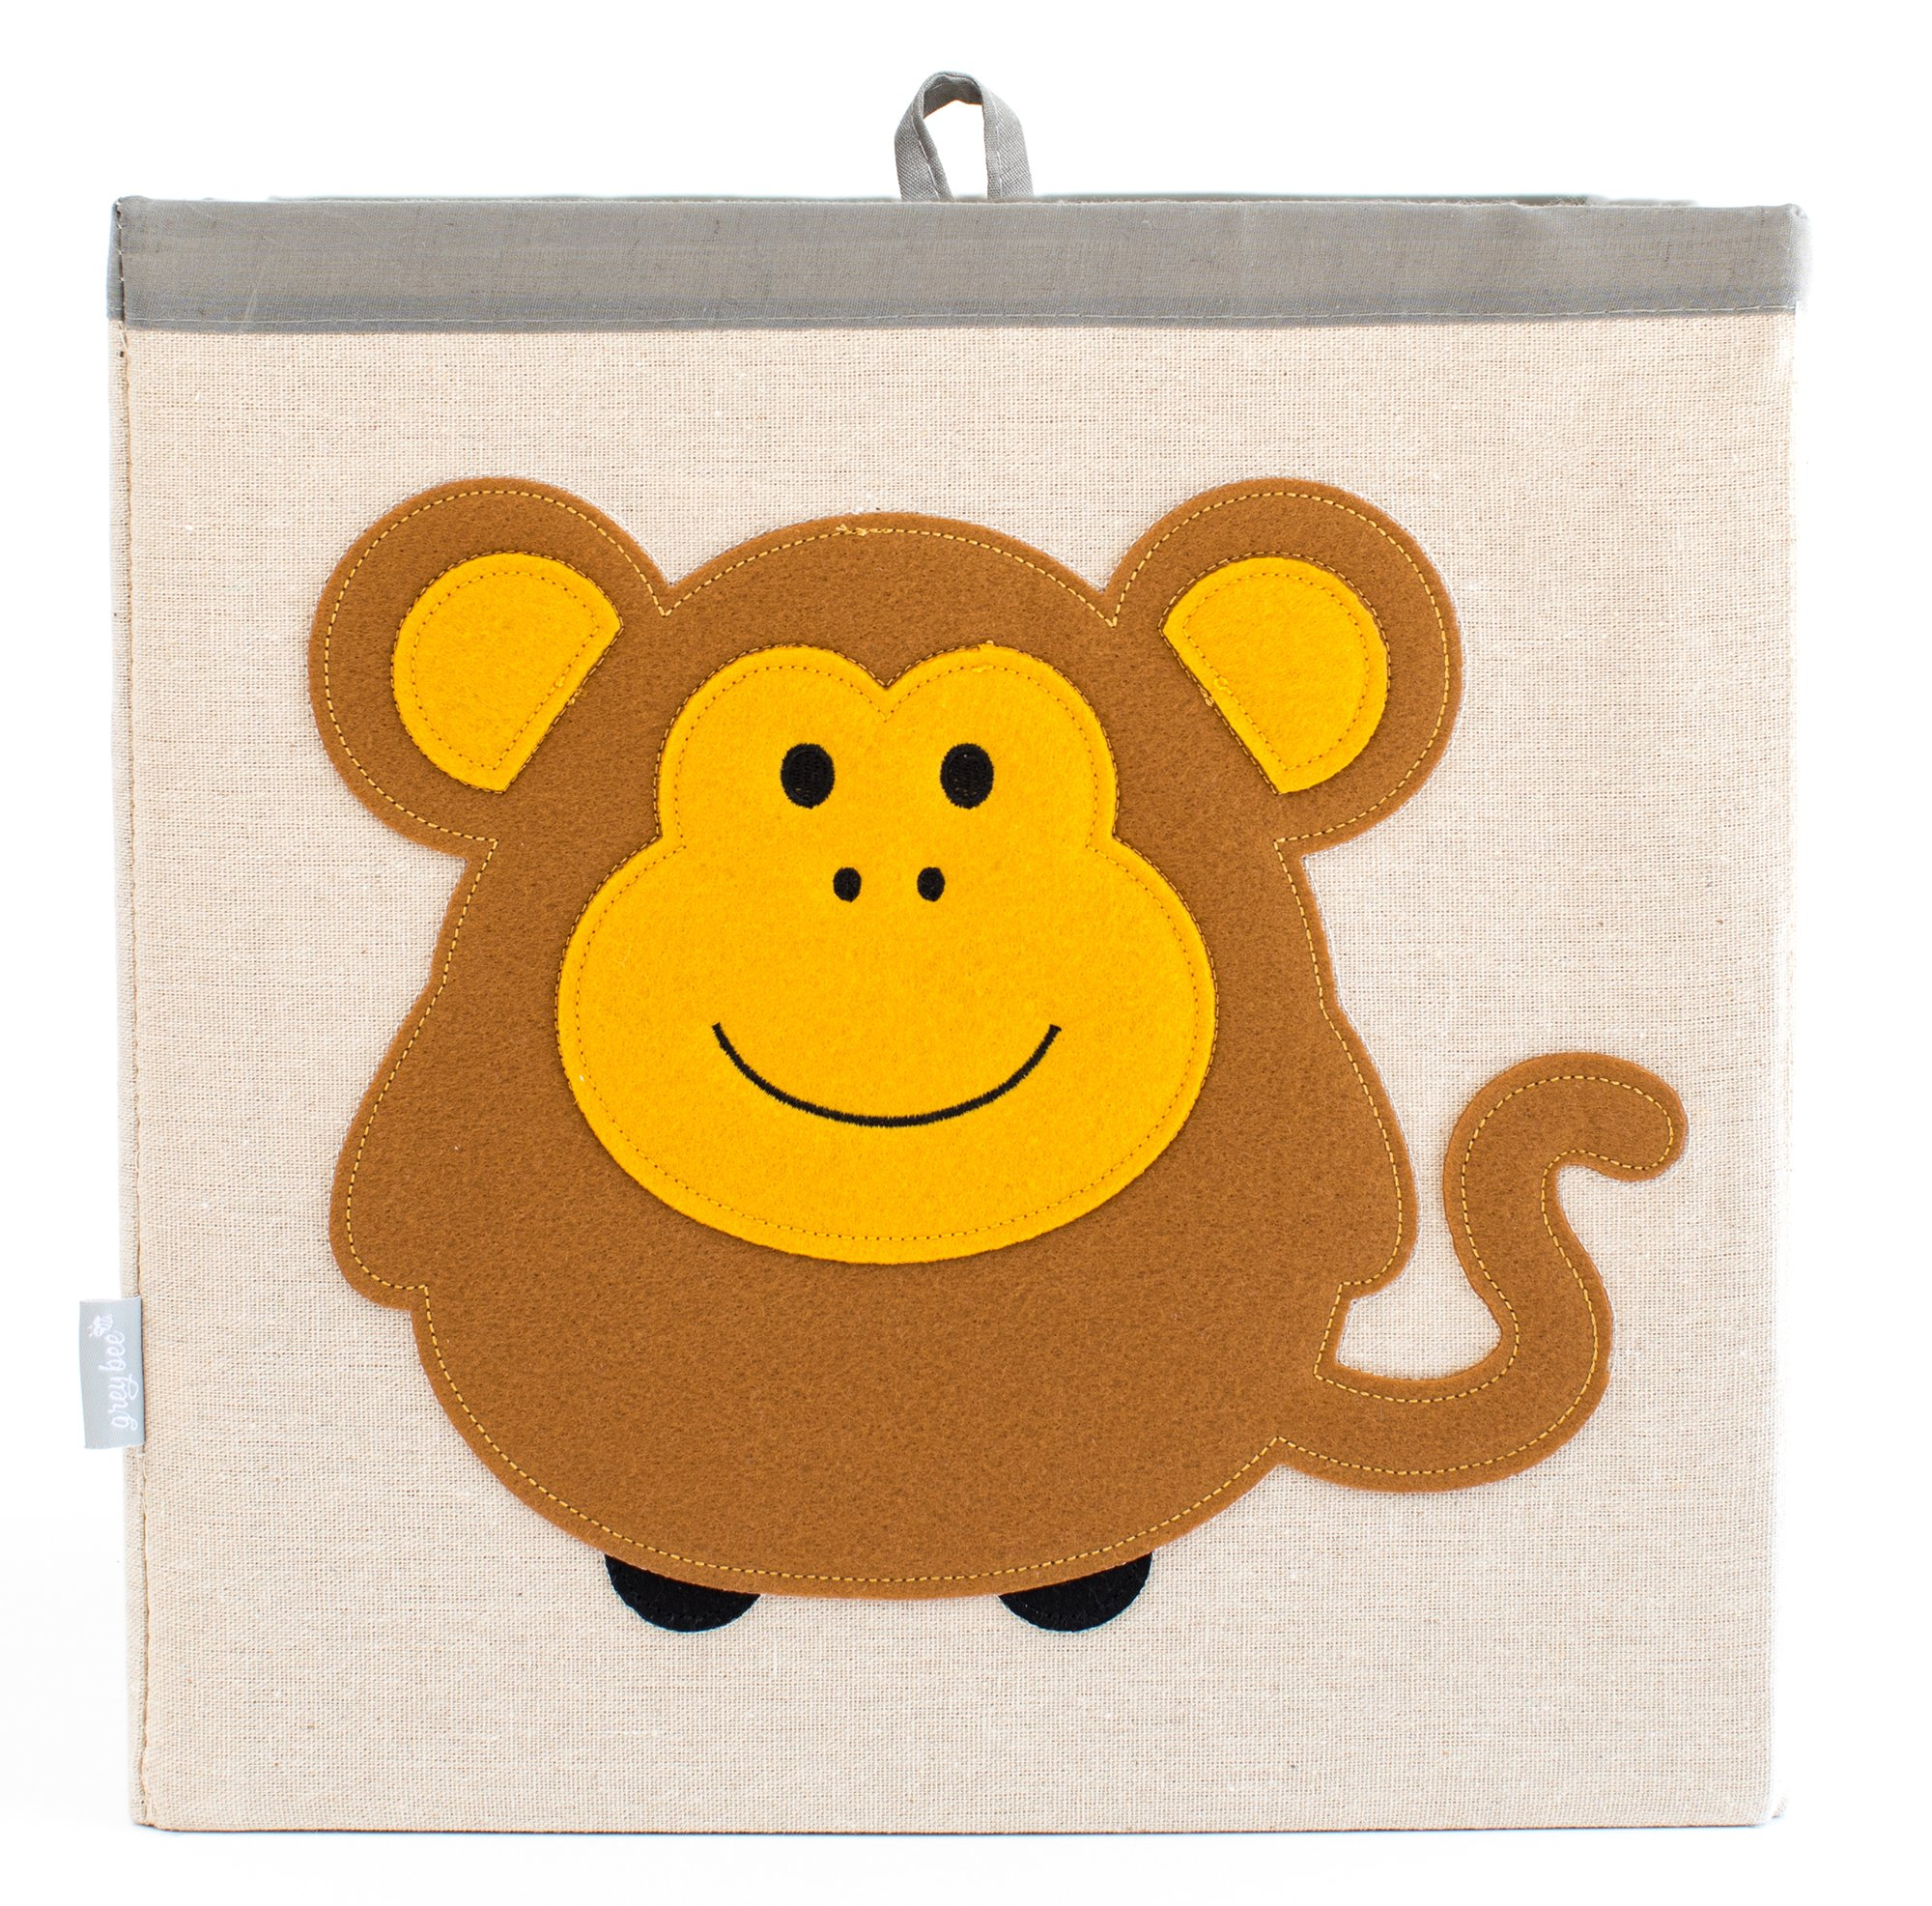 Large Collapsible Cube Storage Bin :: 100% Jute Canvas Toy Basket for Baby Items, Kids' Clothes & Much More, 13'' x 13'' Square, with Adorable Felt Animal Design, Monkey, Brown by Grey Bee by Grey Bee (Image #1)